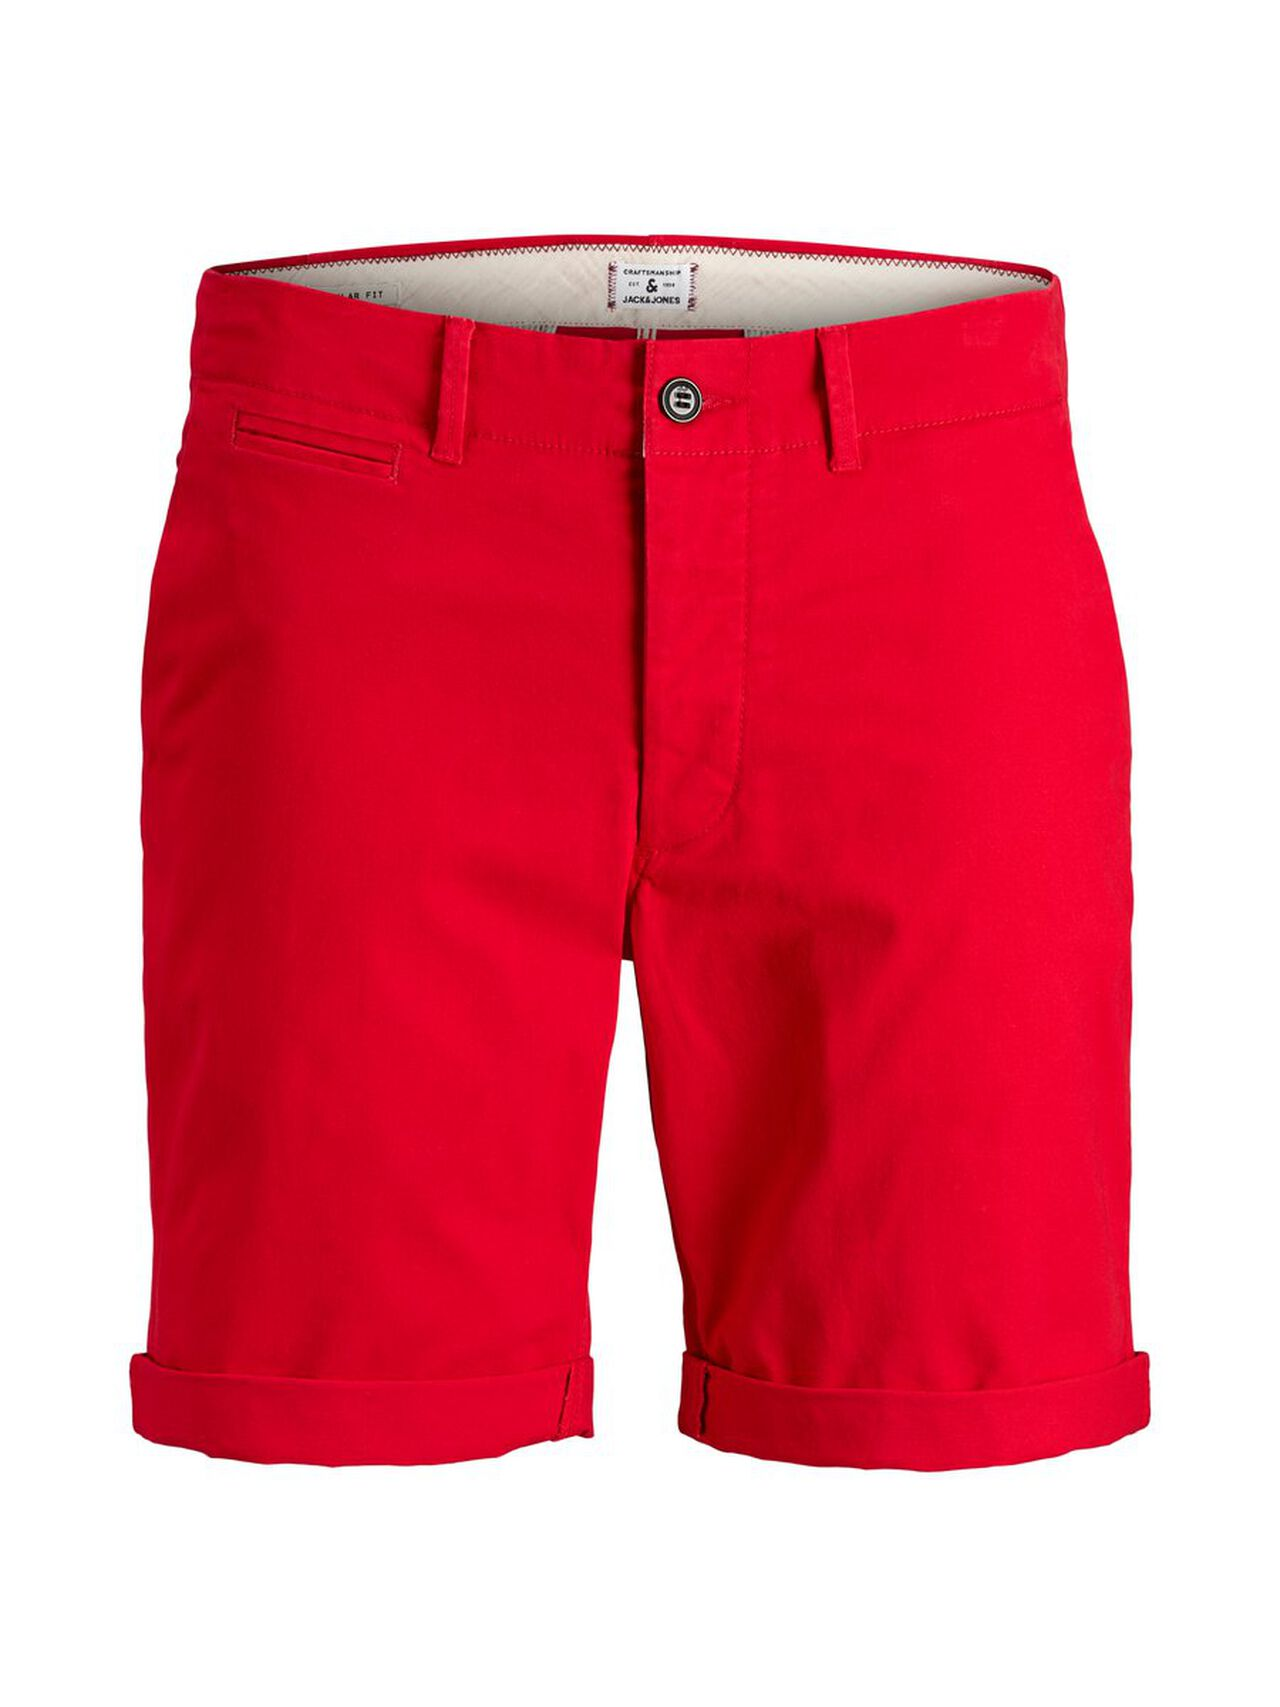 Accor dente residuo  Enzo ww 01 chino shorts | JACK & JONES